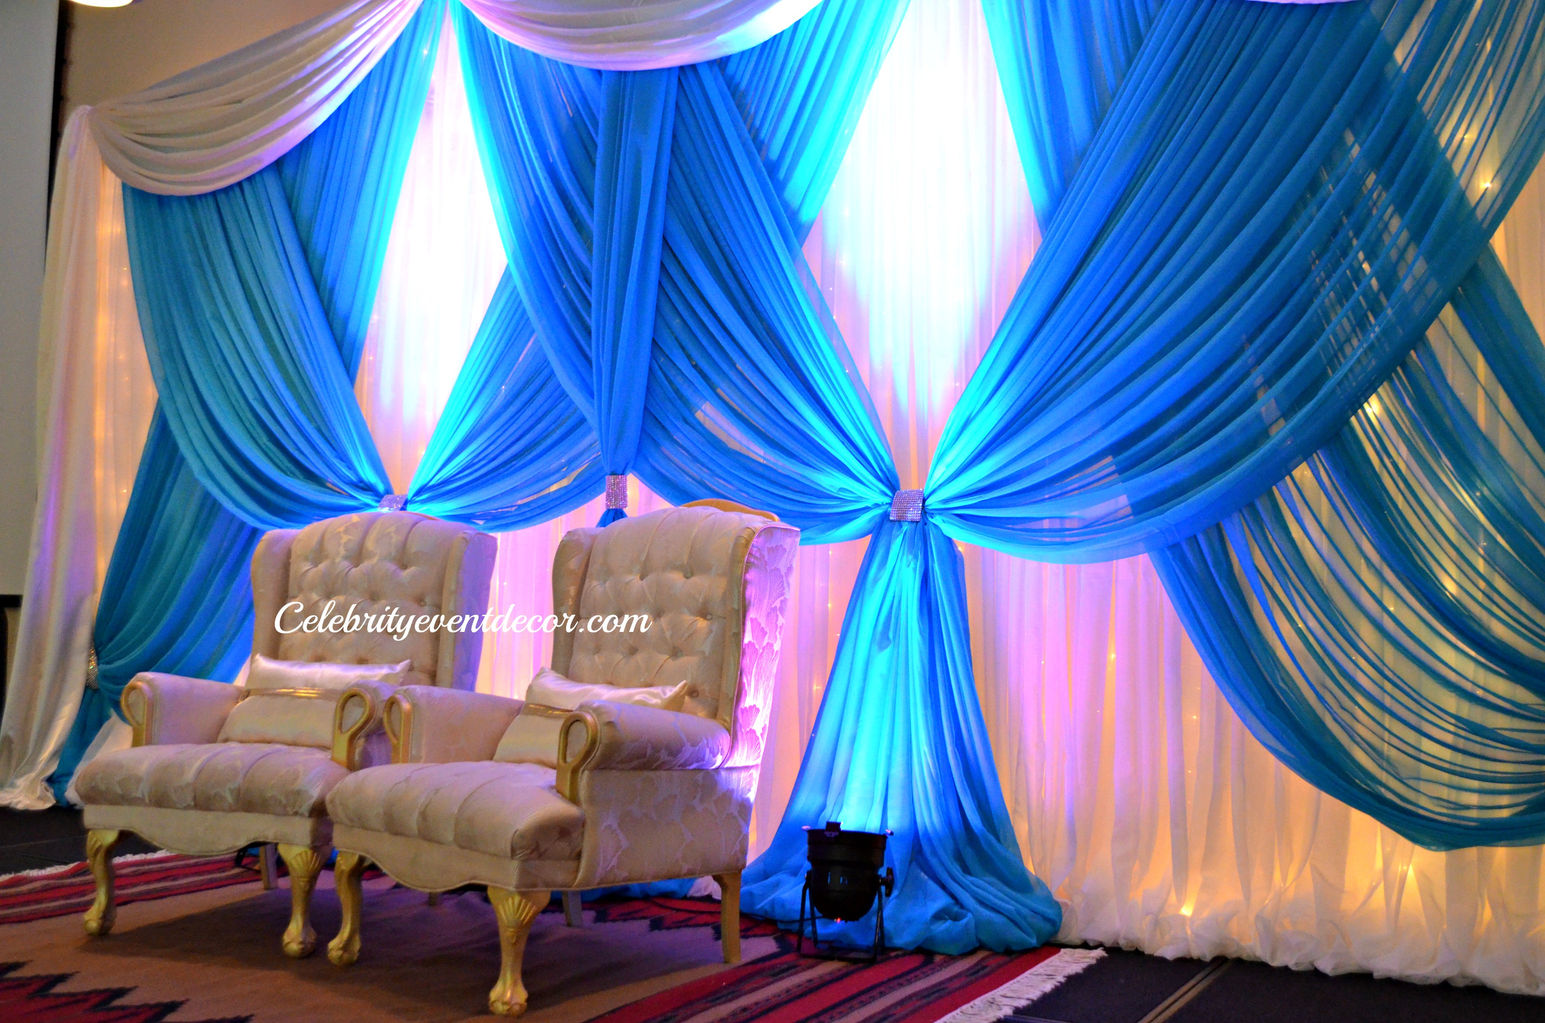 decorations decor event training on deal buy online weeks professional